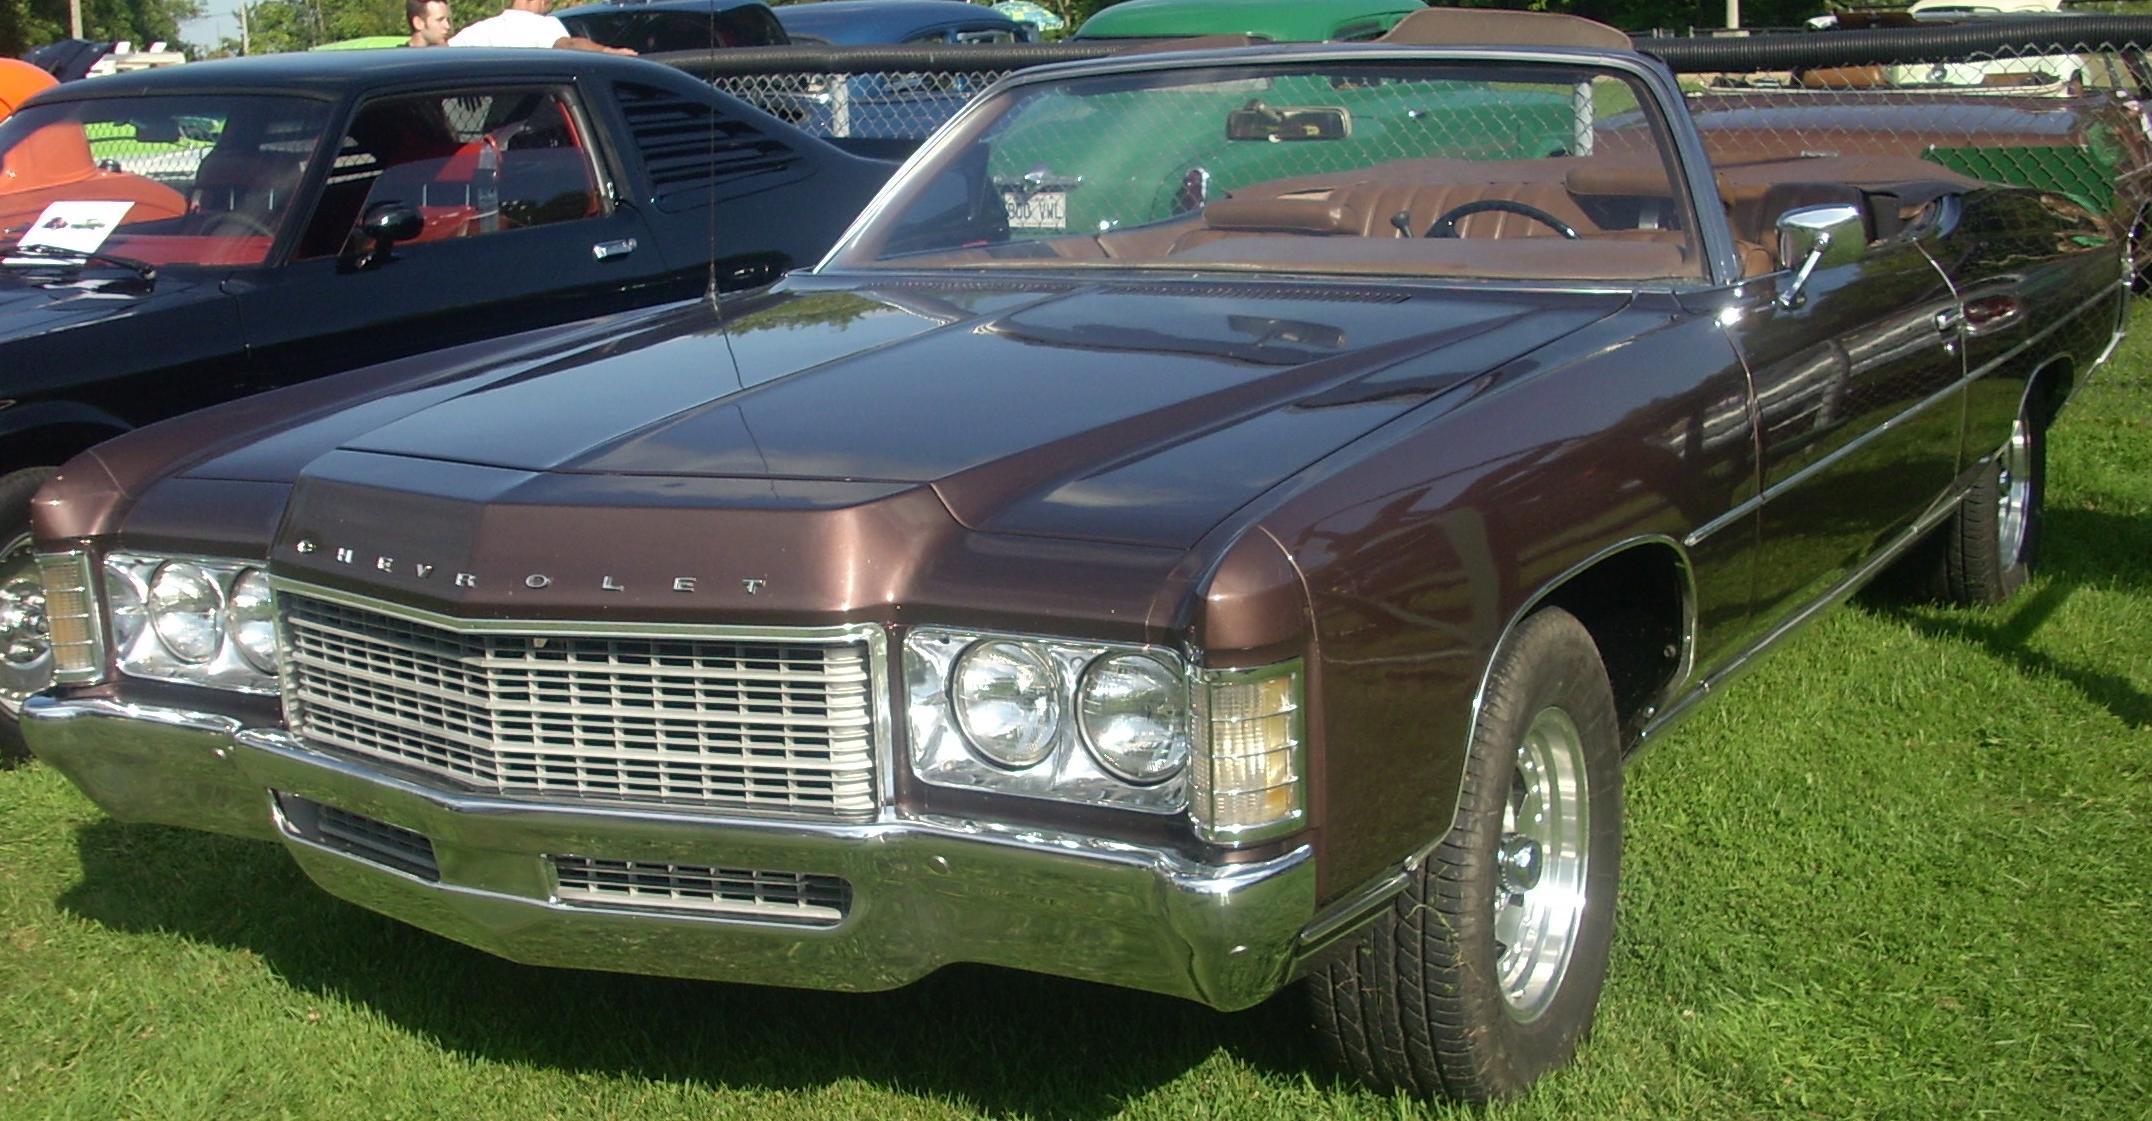 Chevrolet Impala Wikipedia 1968 Caprice 2 Door Cabriolet Serie 164 1971